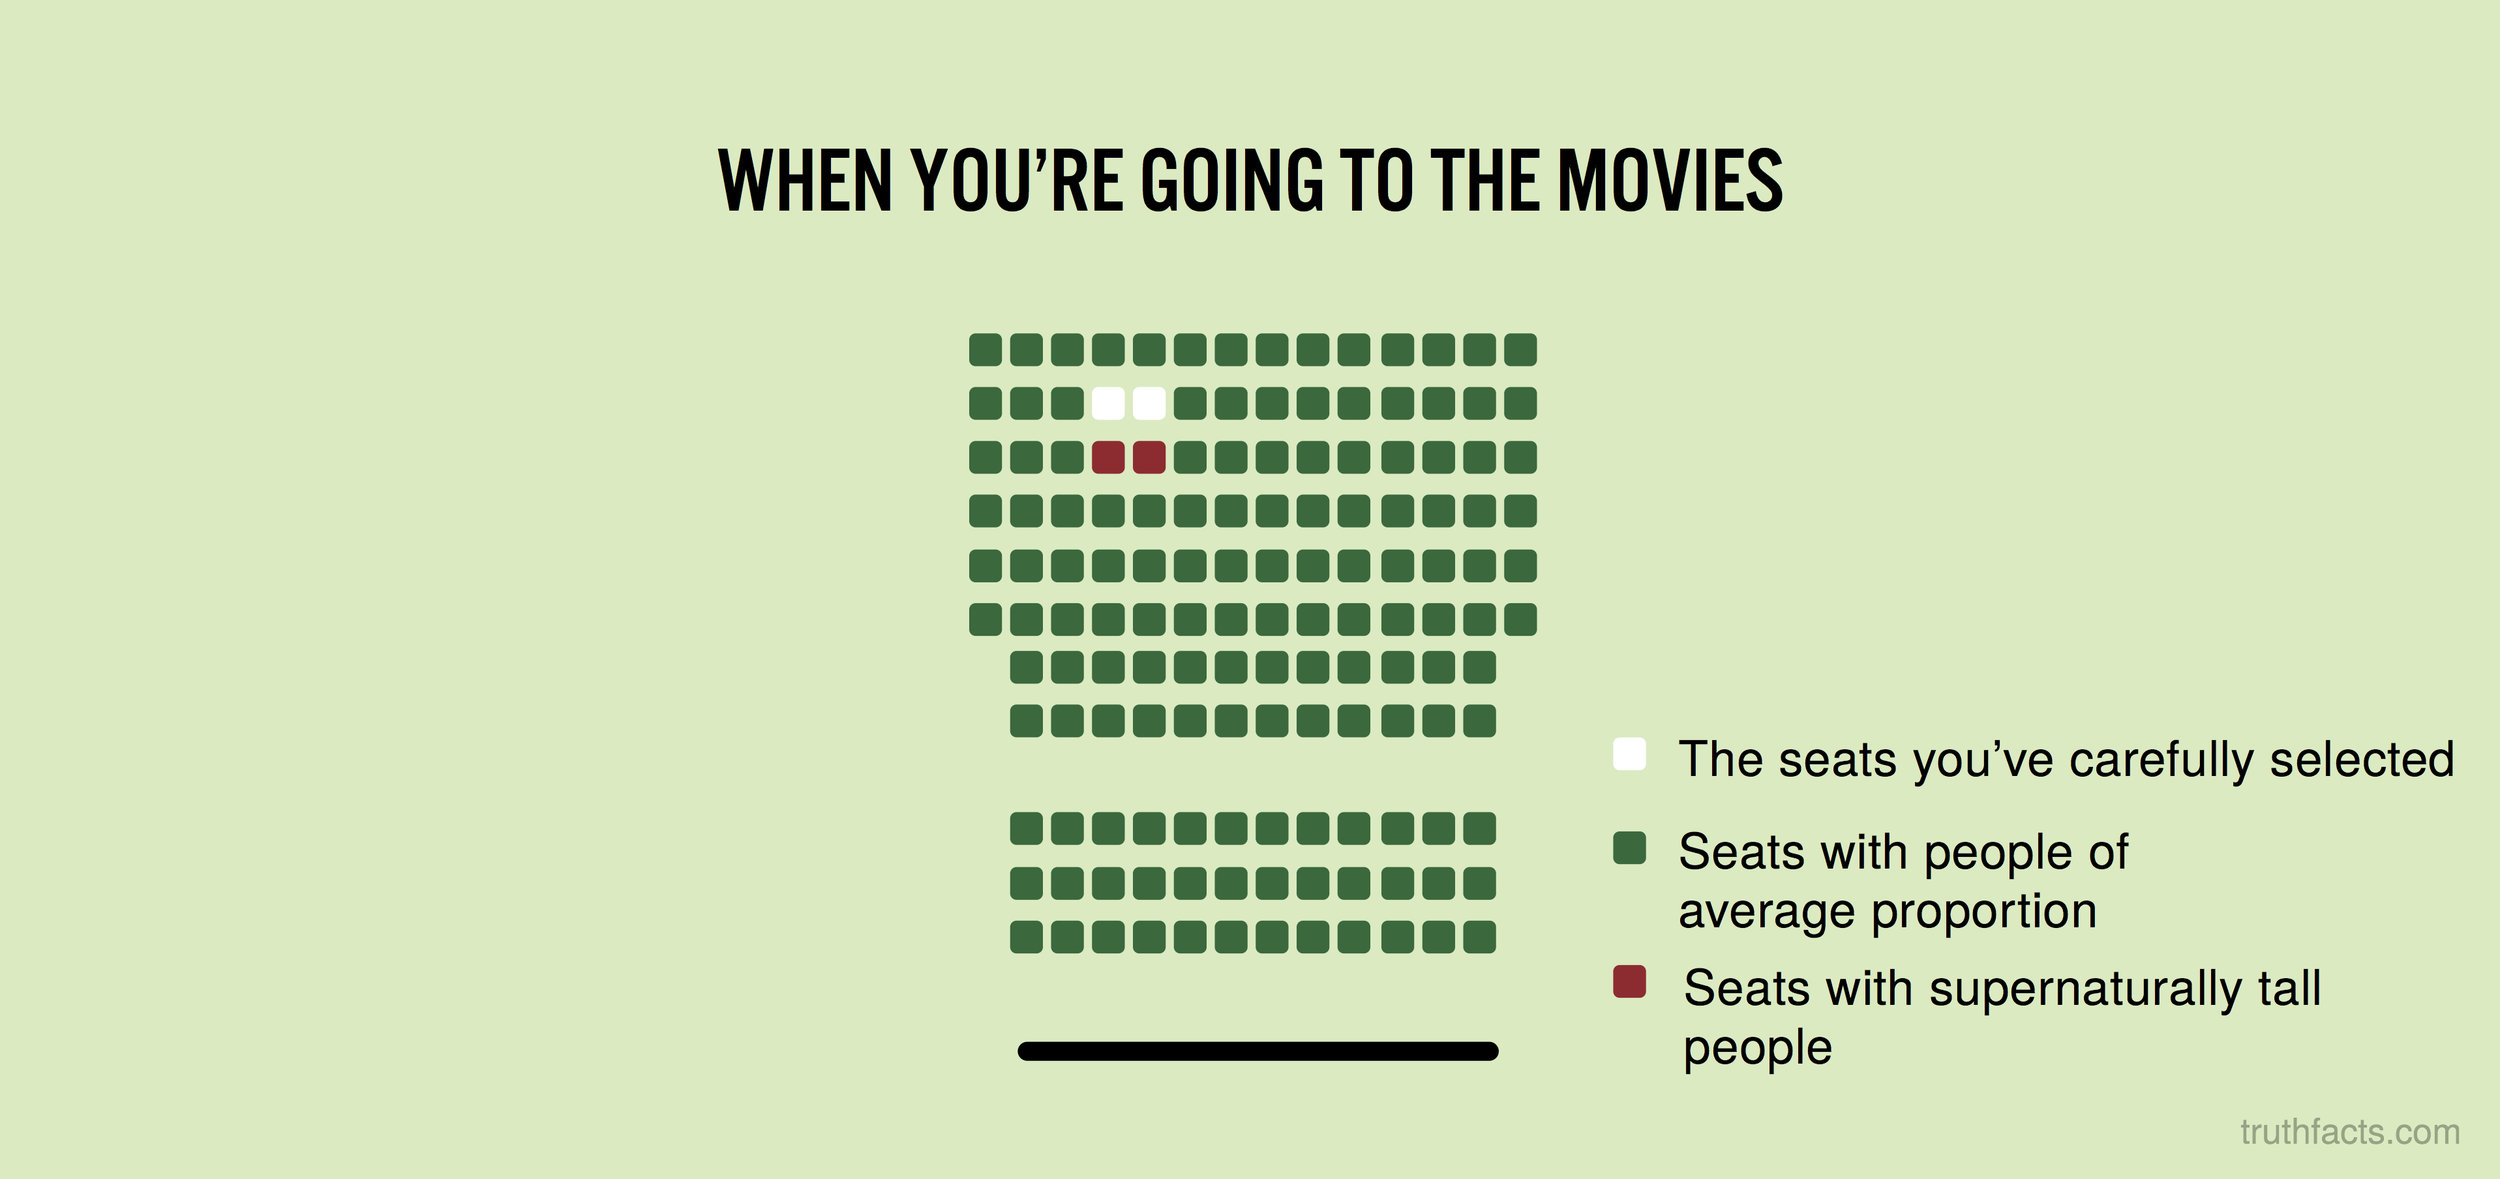 When you're going to the movies